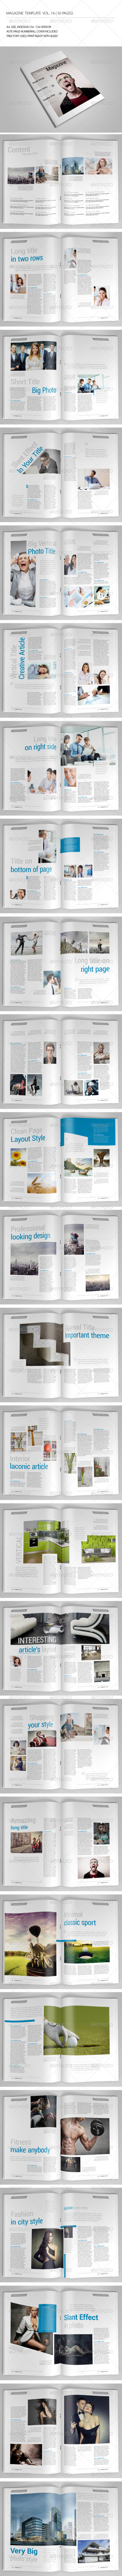 50 Pages Clean Magazine Vol16 - Magazines Print Templates